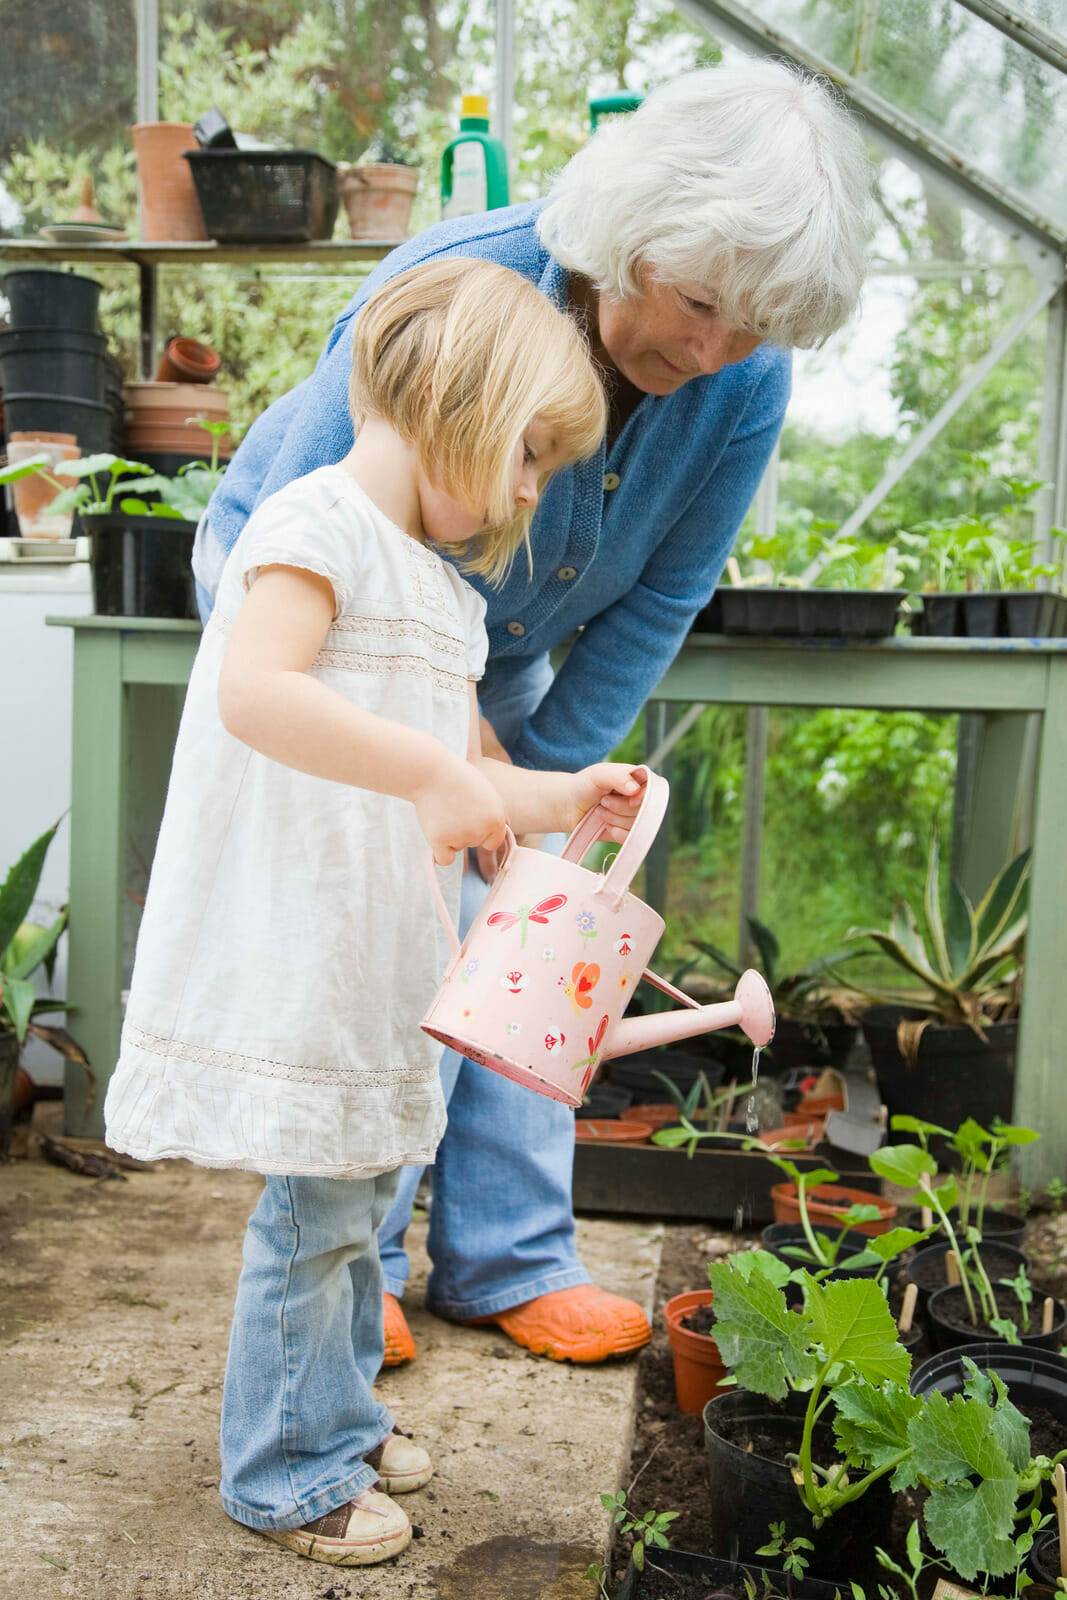 Meaningful ways to celebrate Grandparent's Day